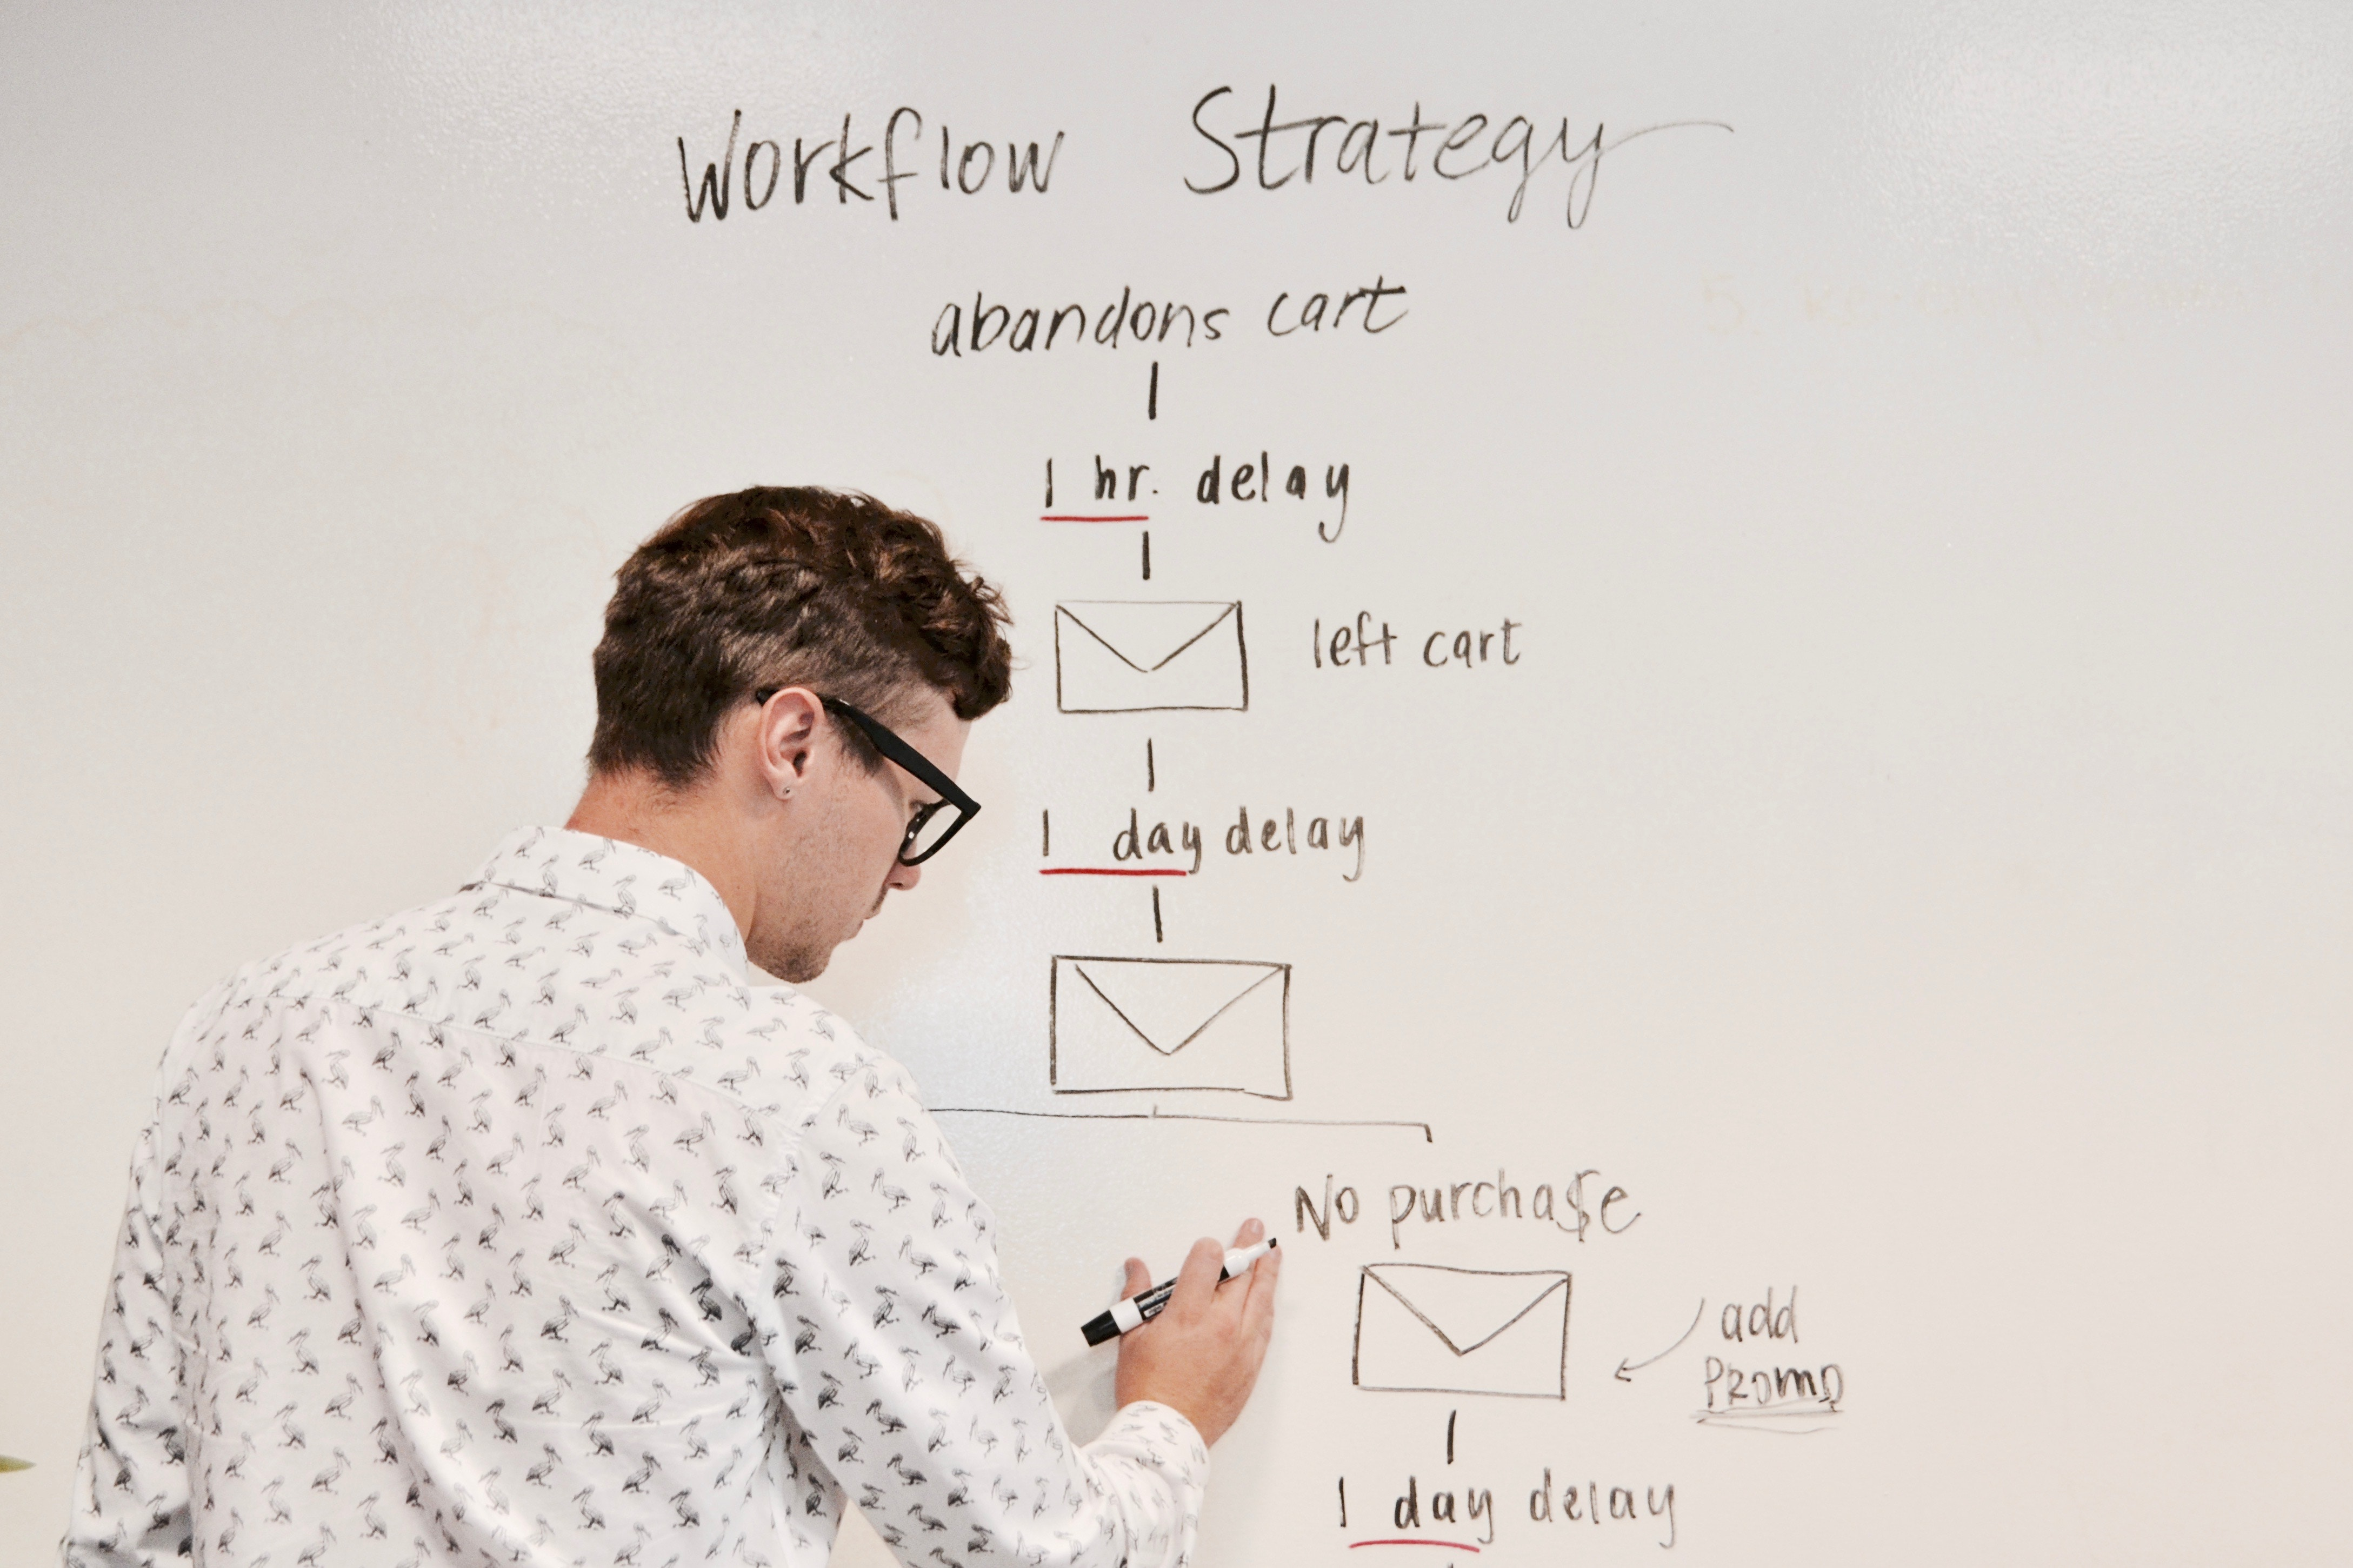 man writing on whiteboard